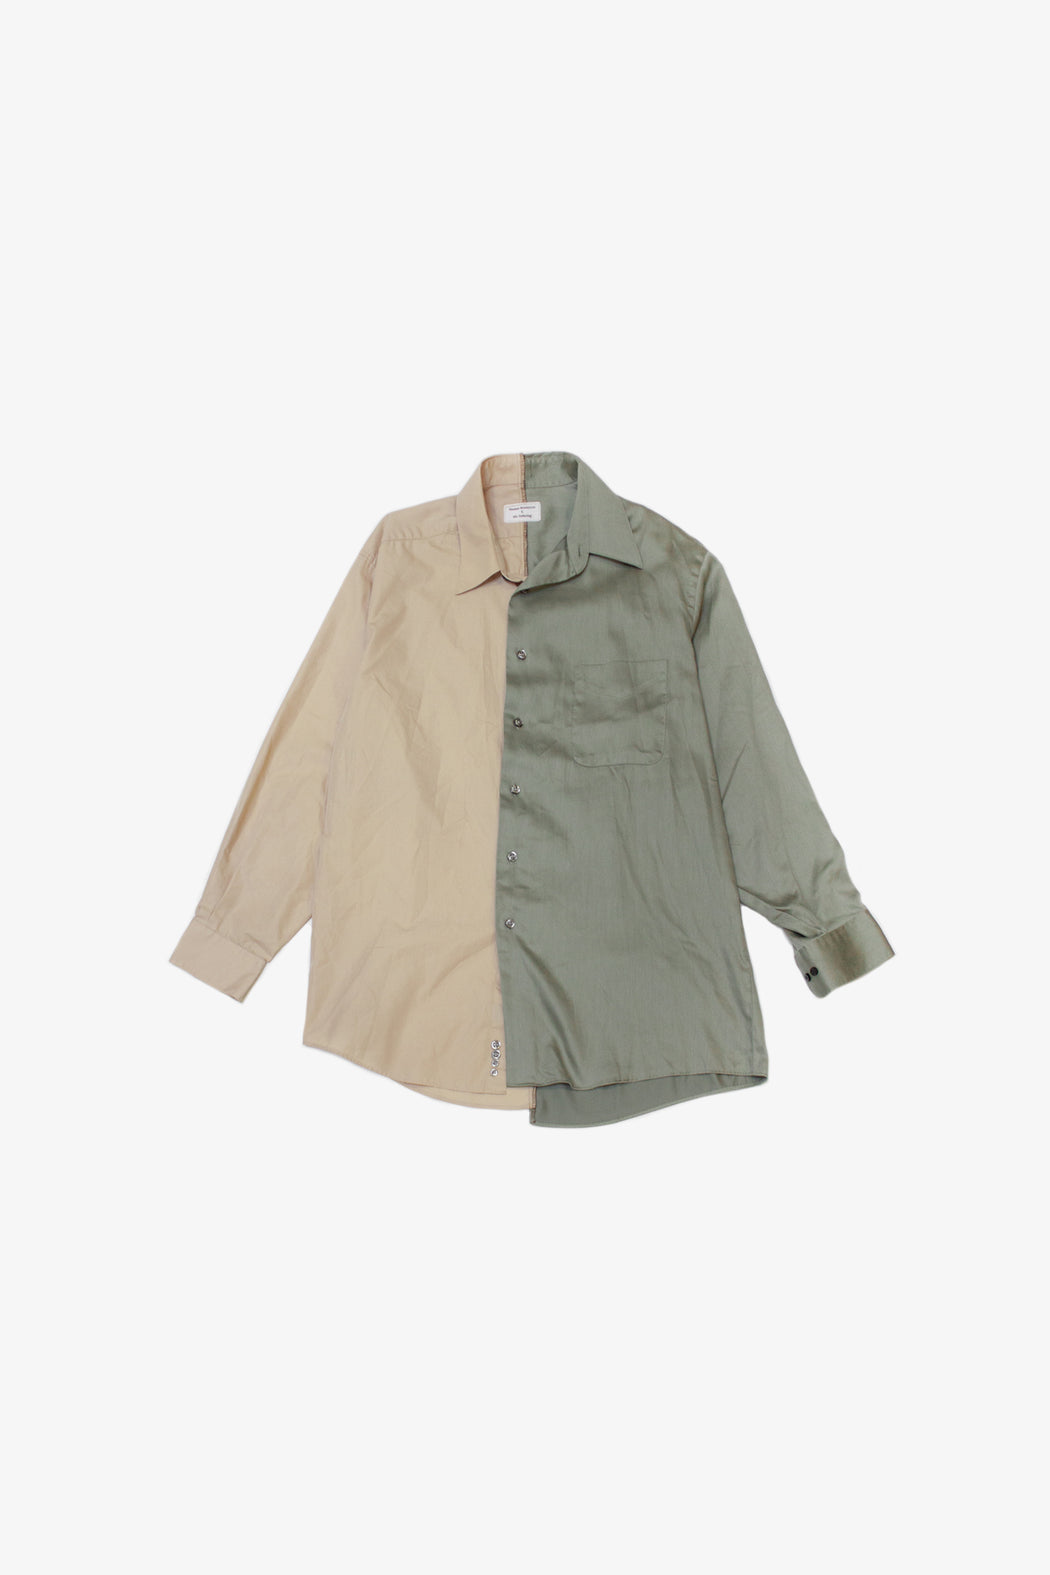 Re-Worked 2-Tone Button-Up | No. 06